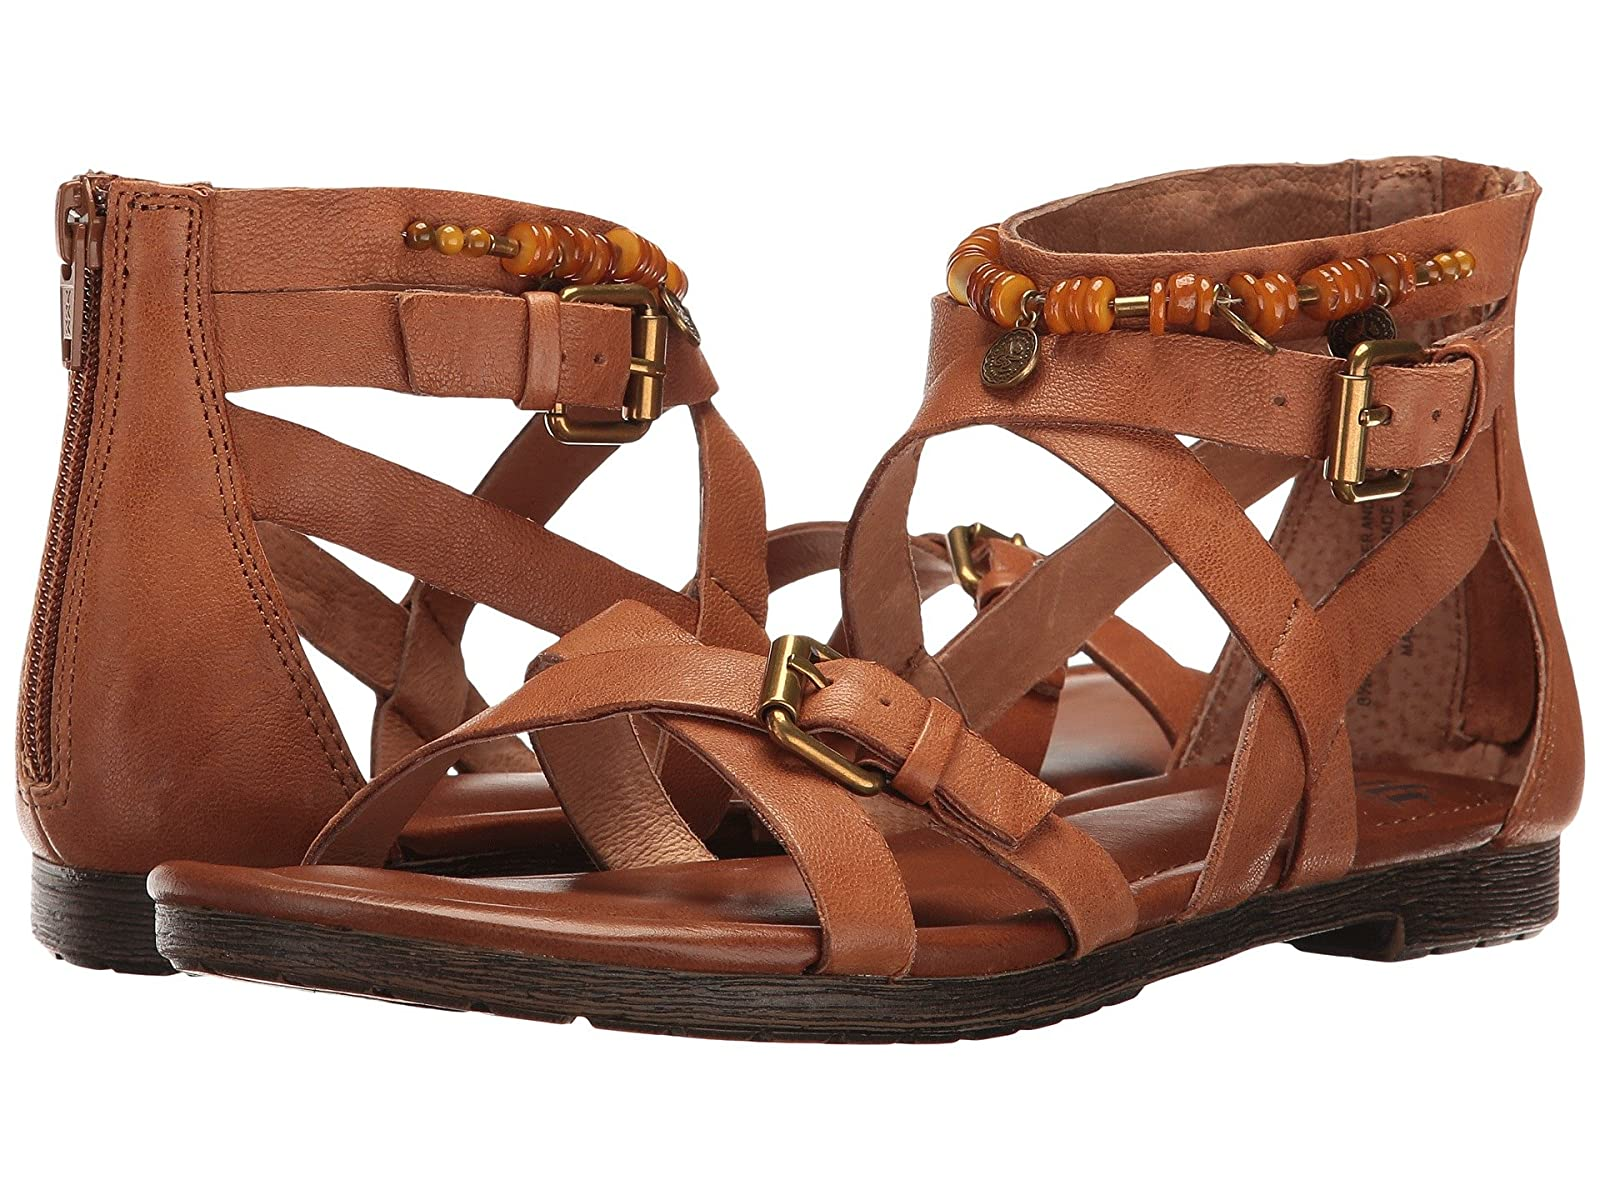 Sofft BocaCheap and distinctive eye-catching shoes